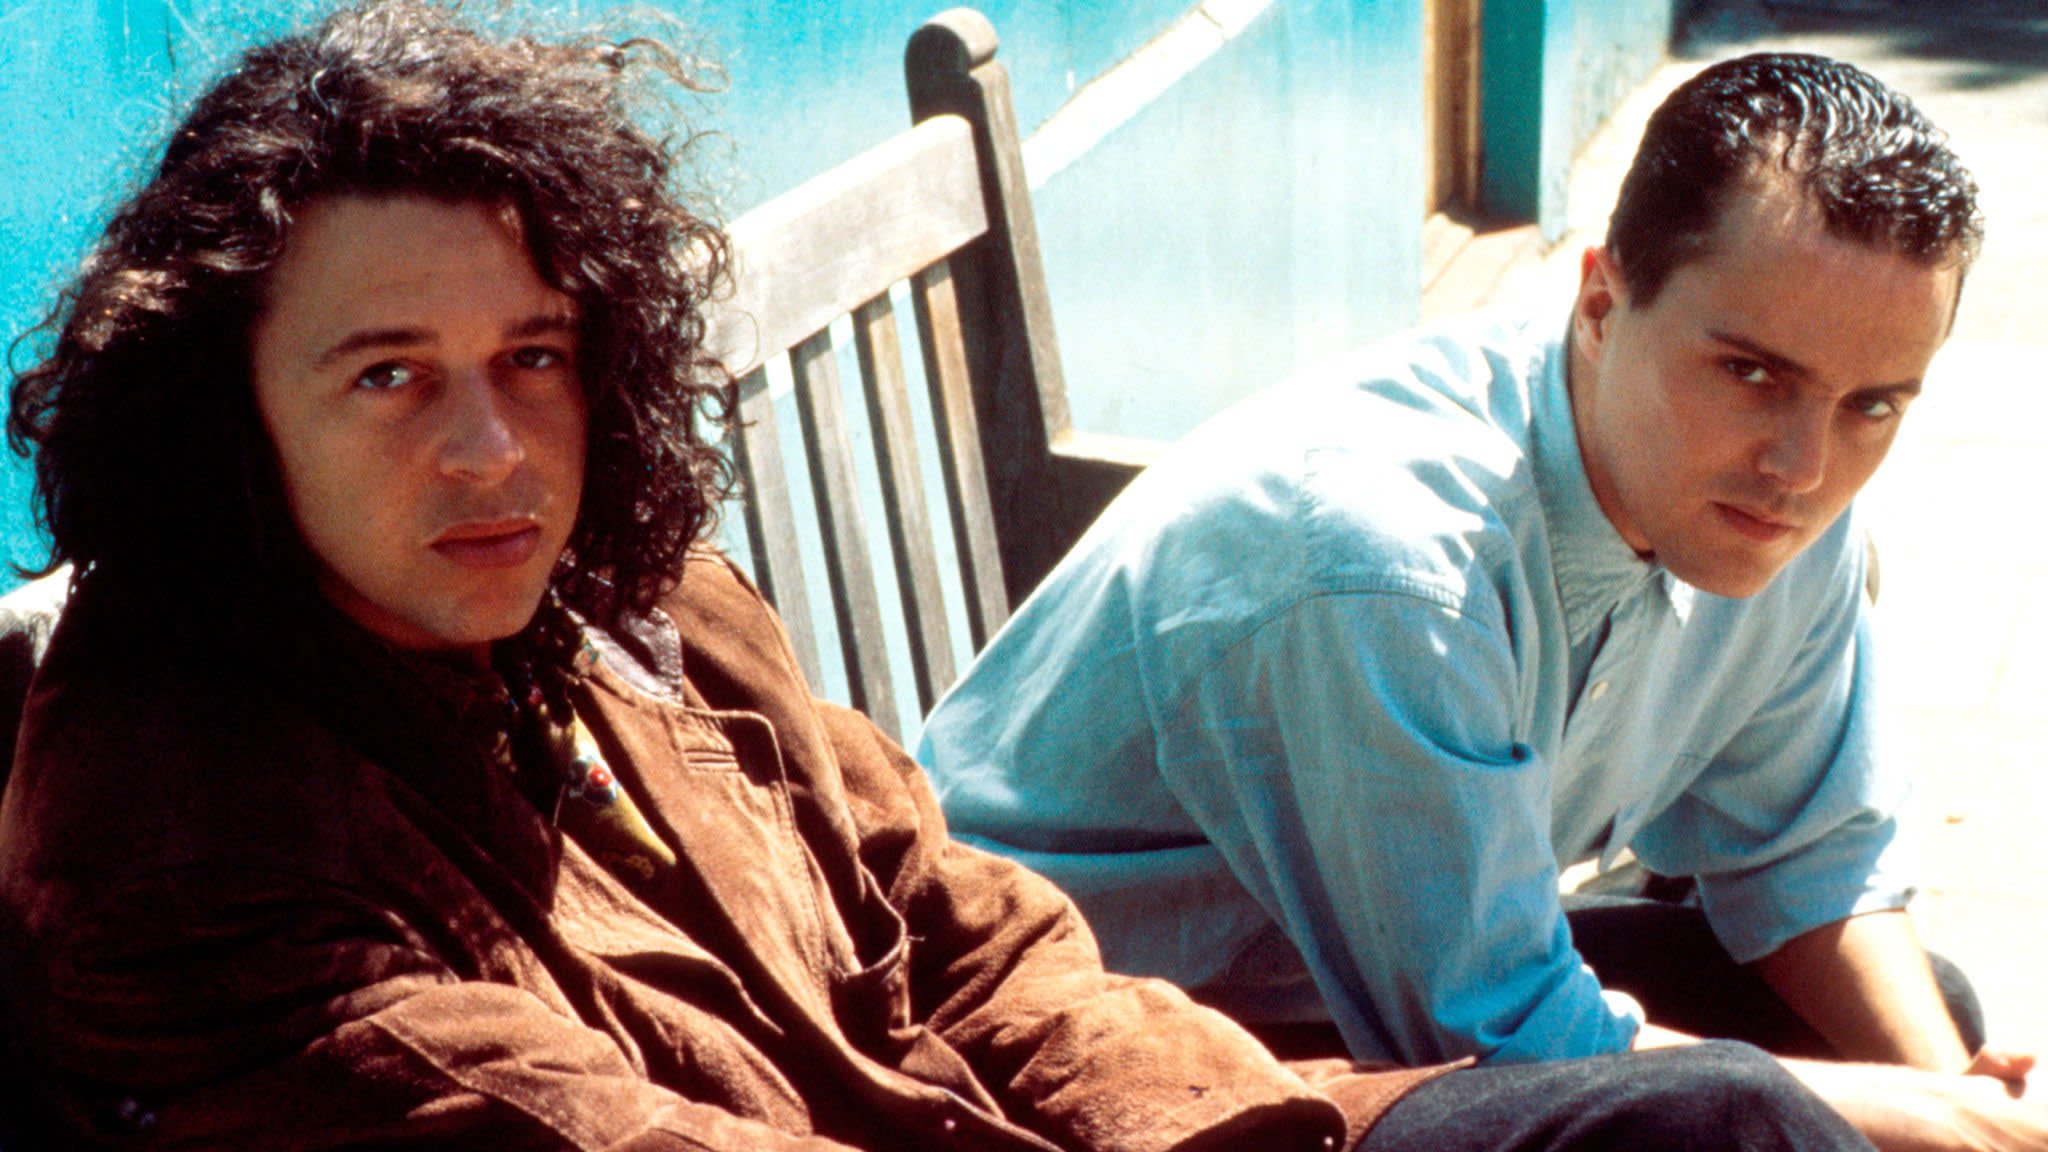 Everybody Wants to Rule the World — Tears for Fears' 1985 hit was